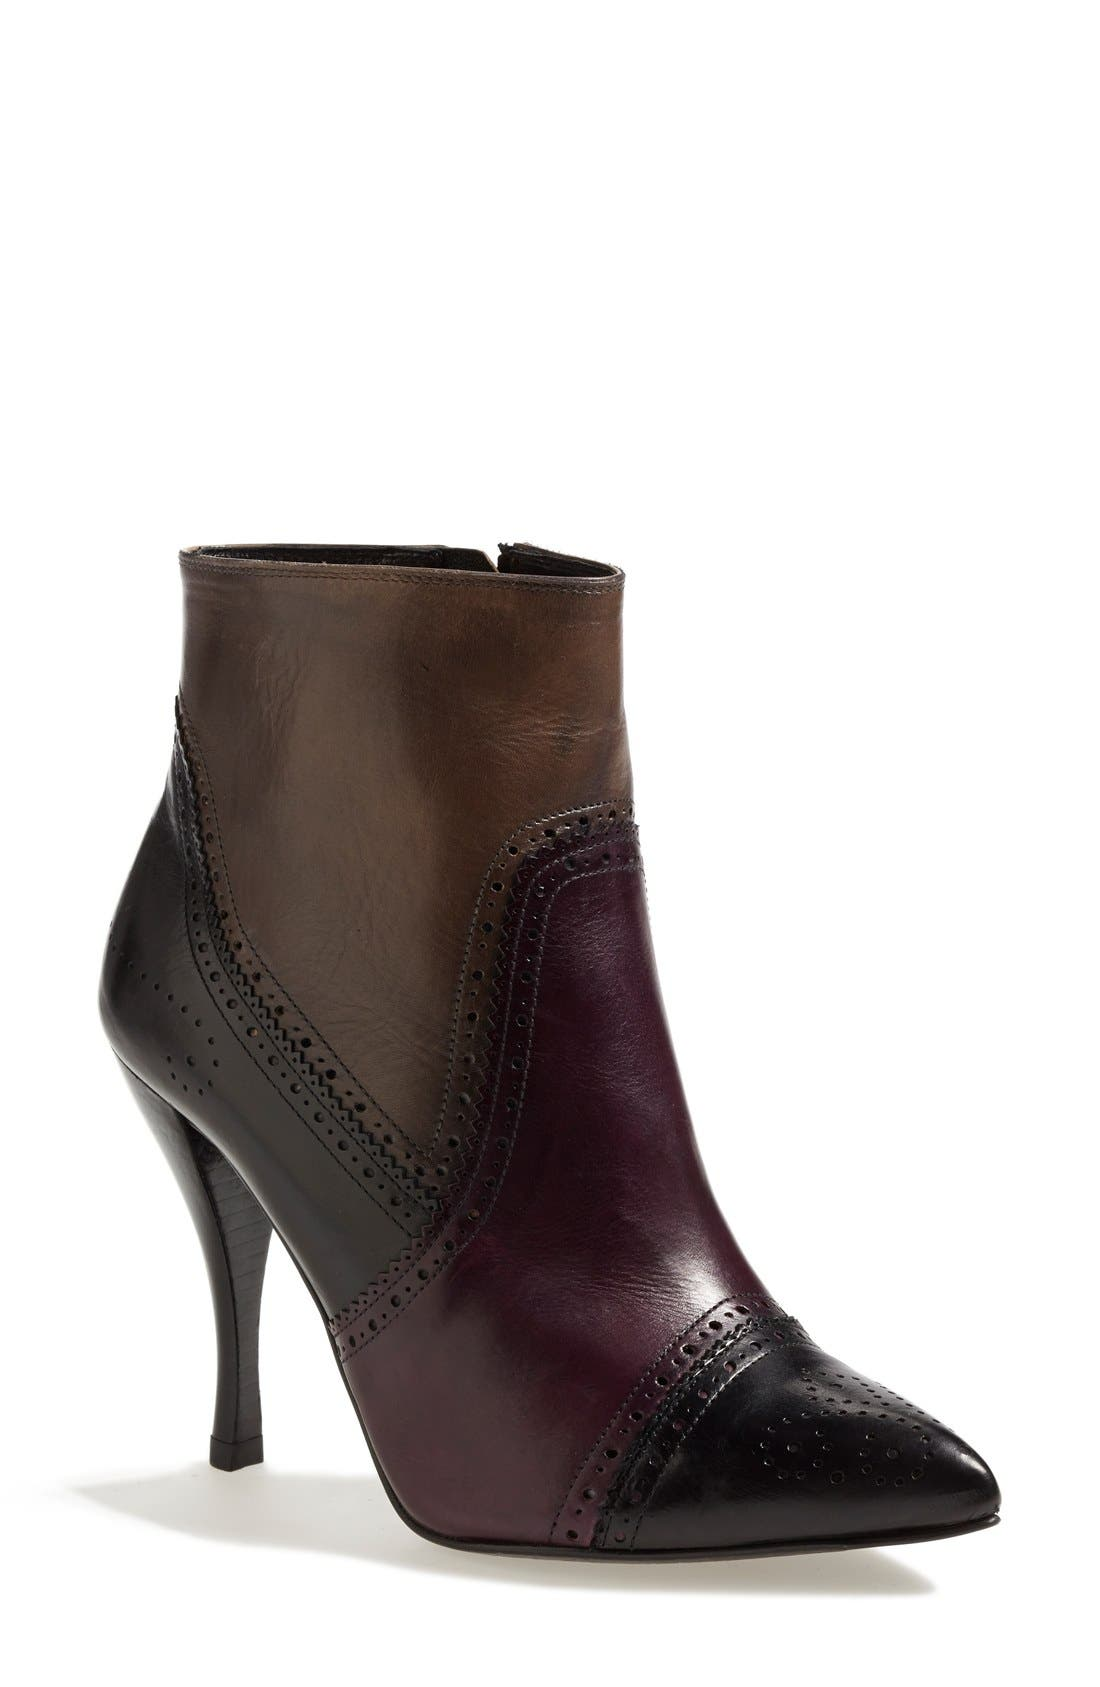 Main Image - Pedro Garcia 'Harriet' Brogue Boot (Women) (Nordstrom Exclusive)